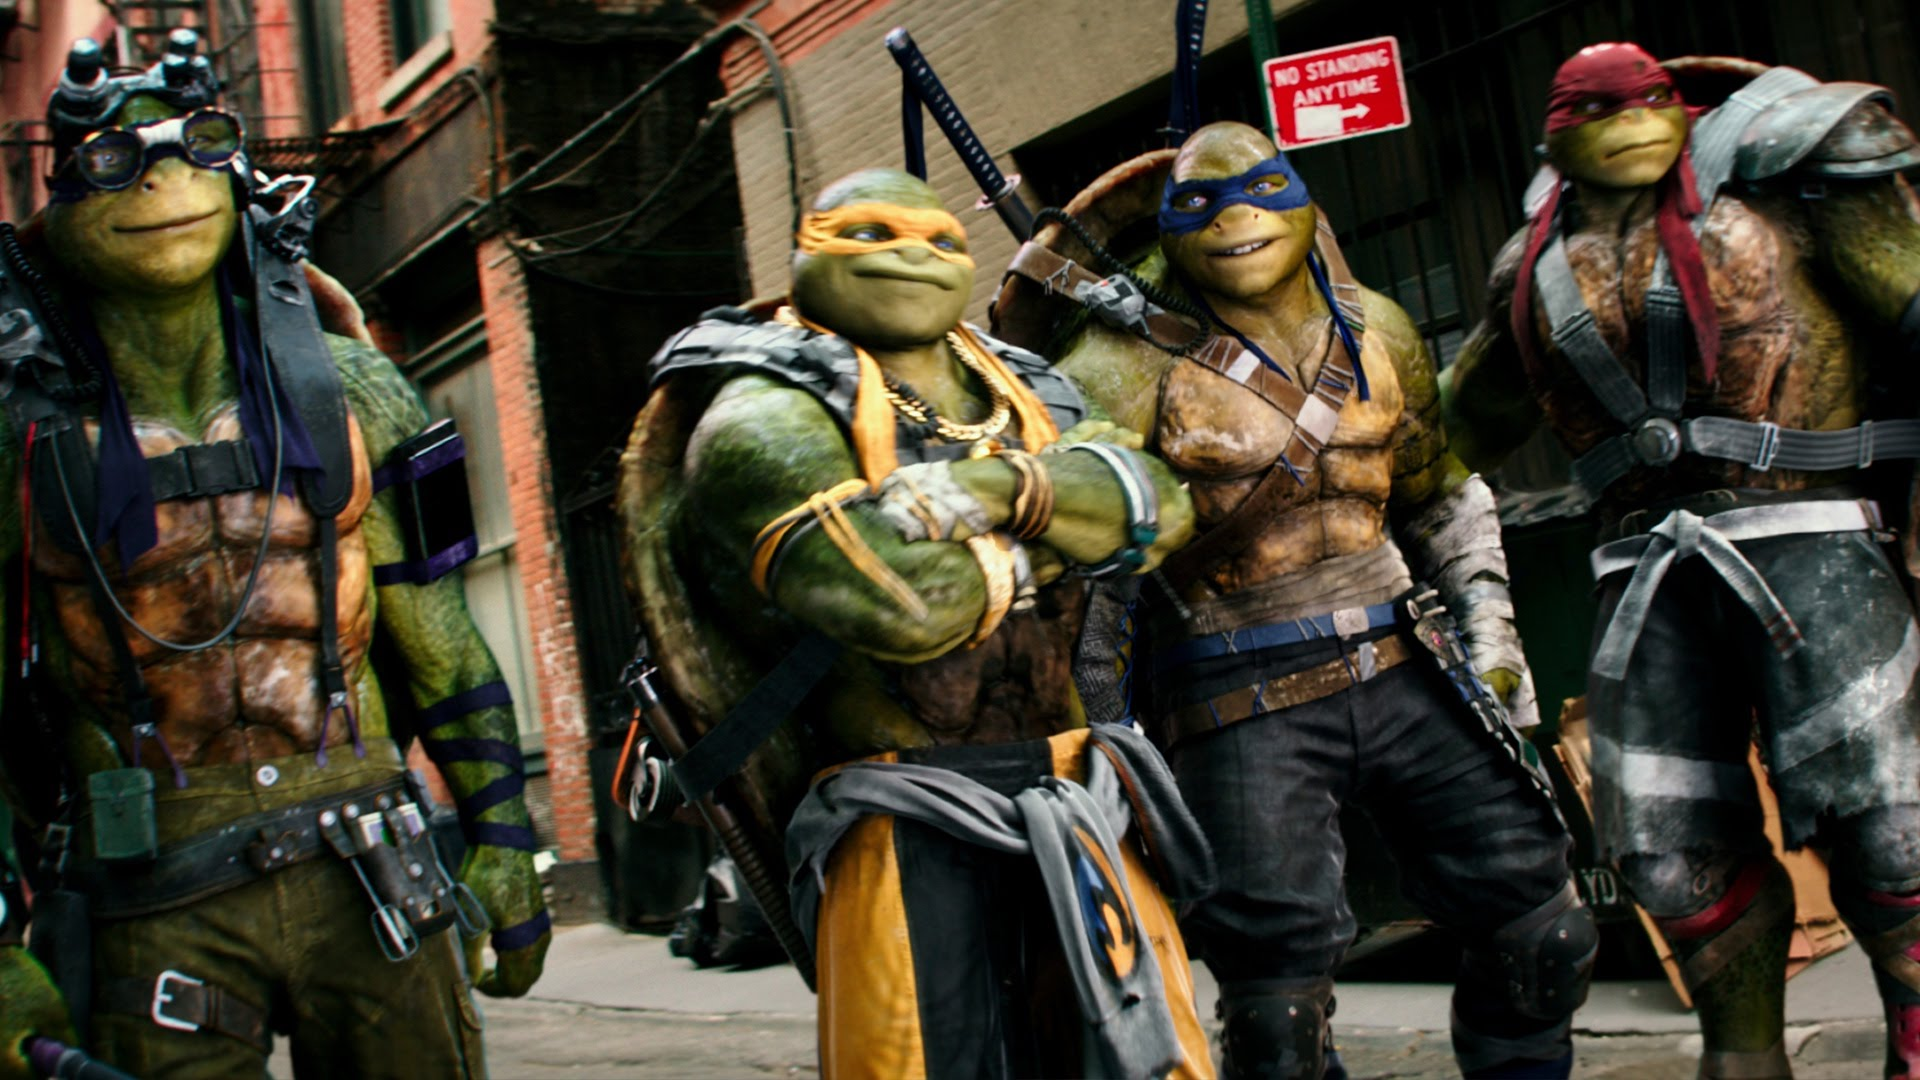 Teenage Mutant Ninja Turtles: Out of the Shadows | Trailer #1